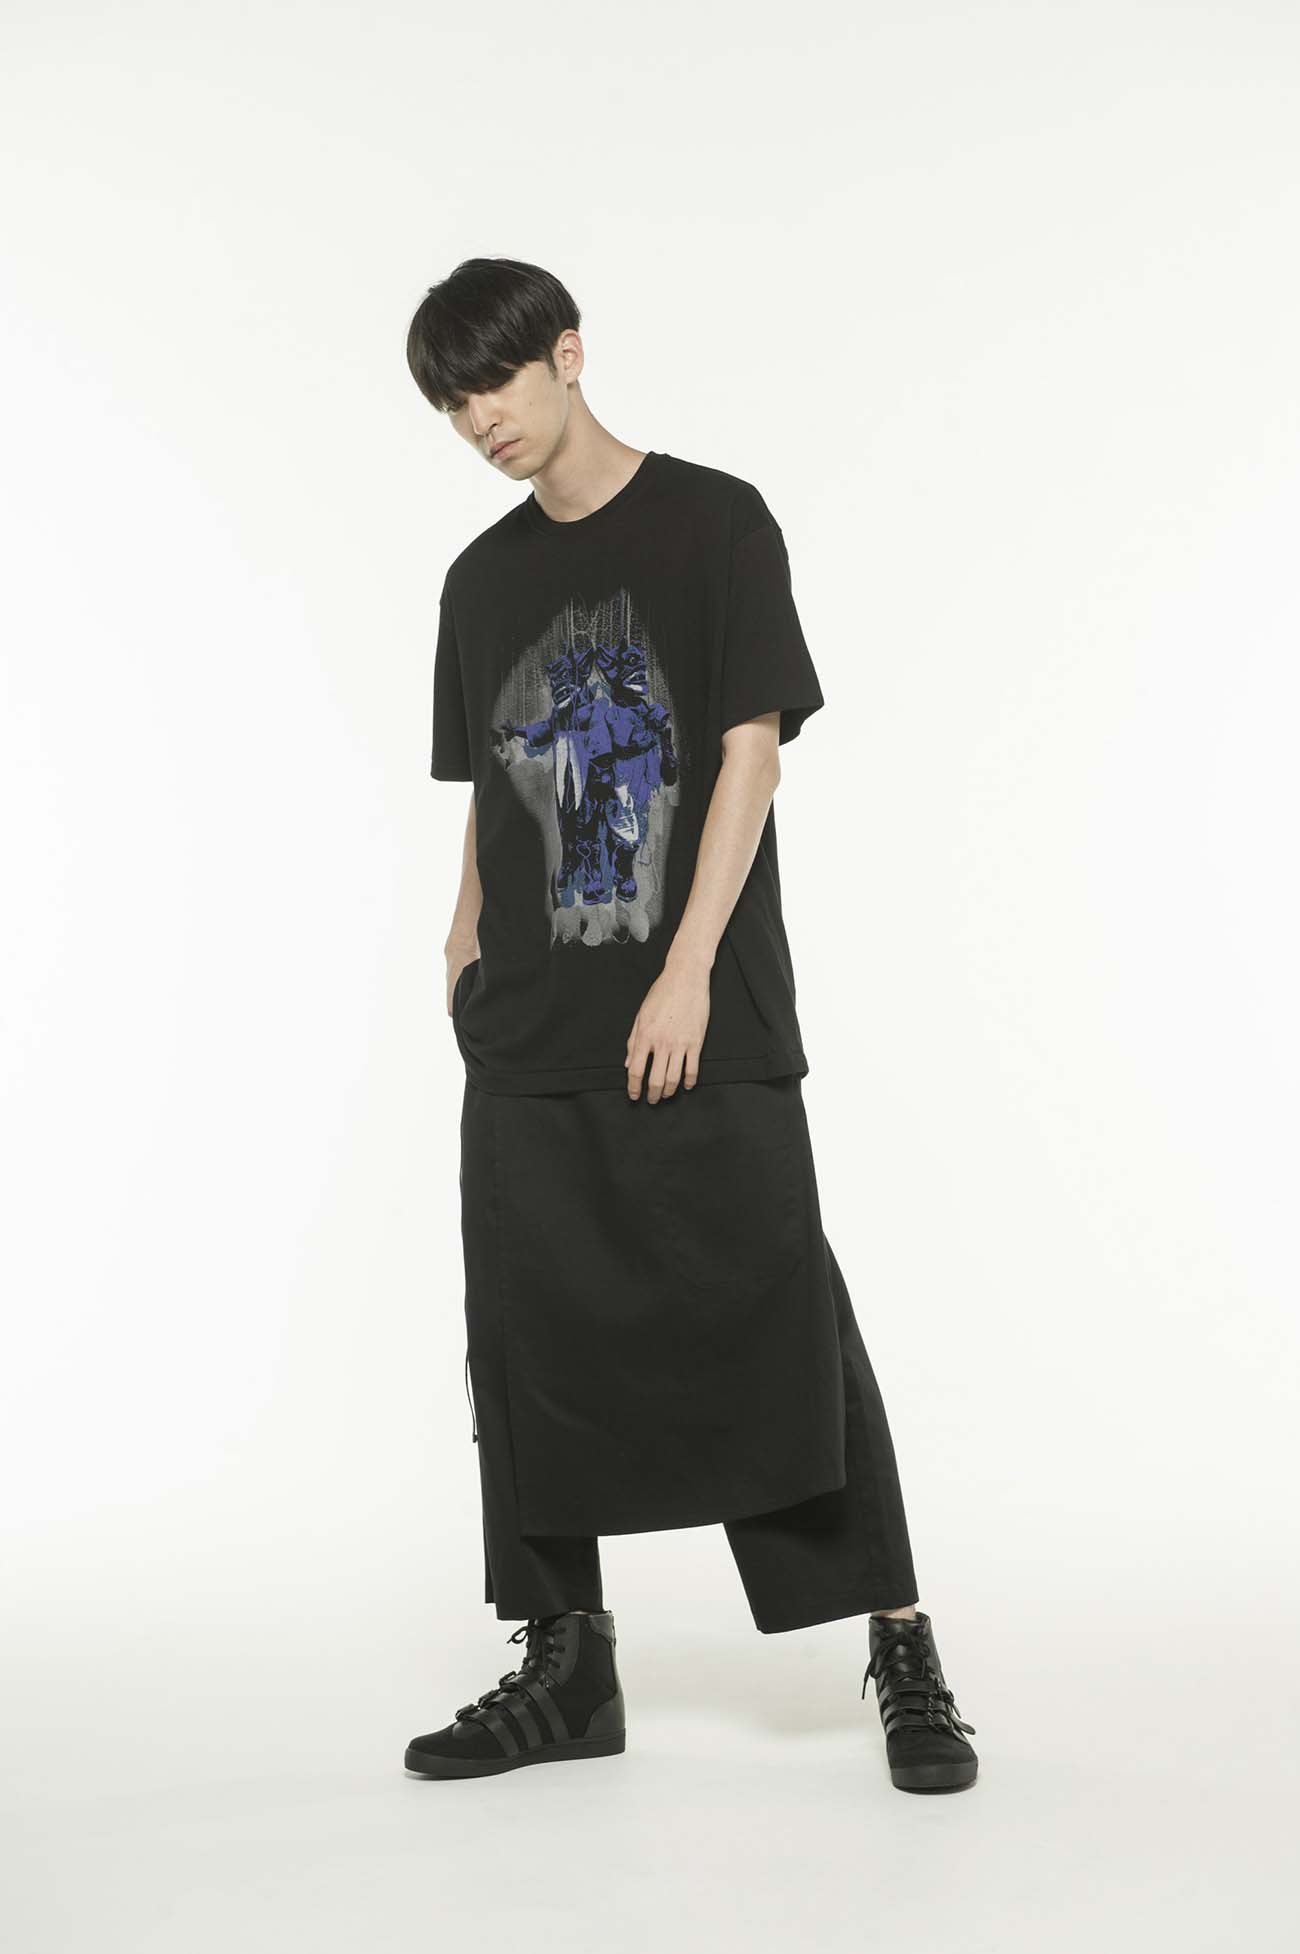 20/CottonJersey Two Demons Marionette T-Shirt